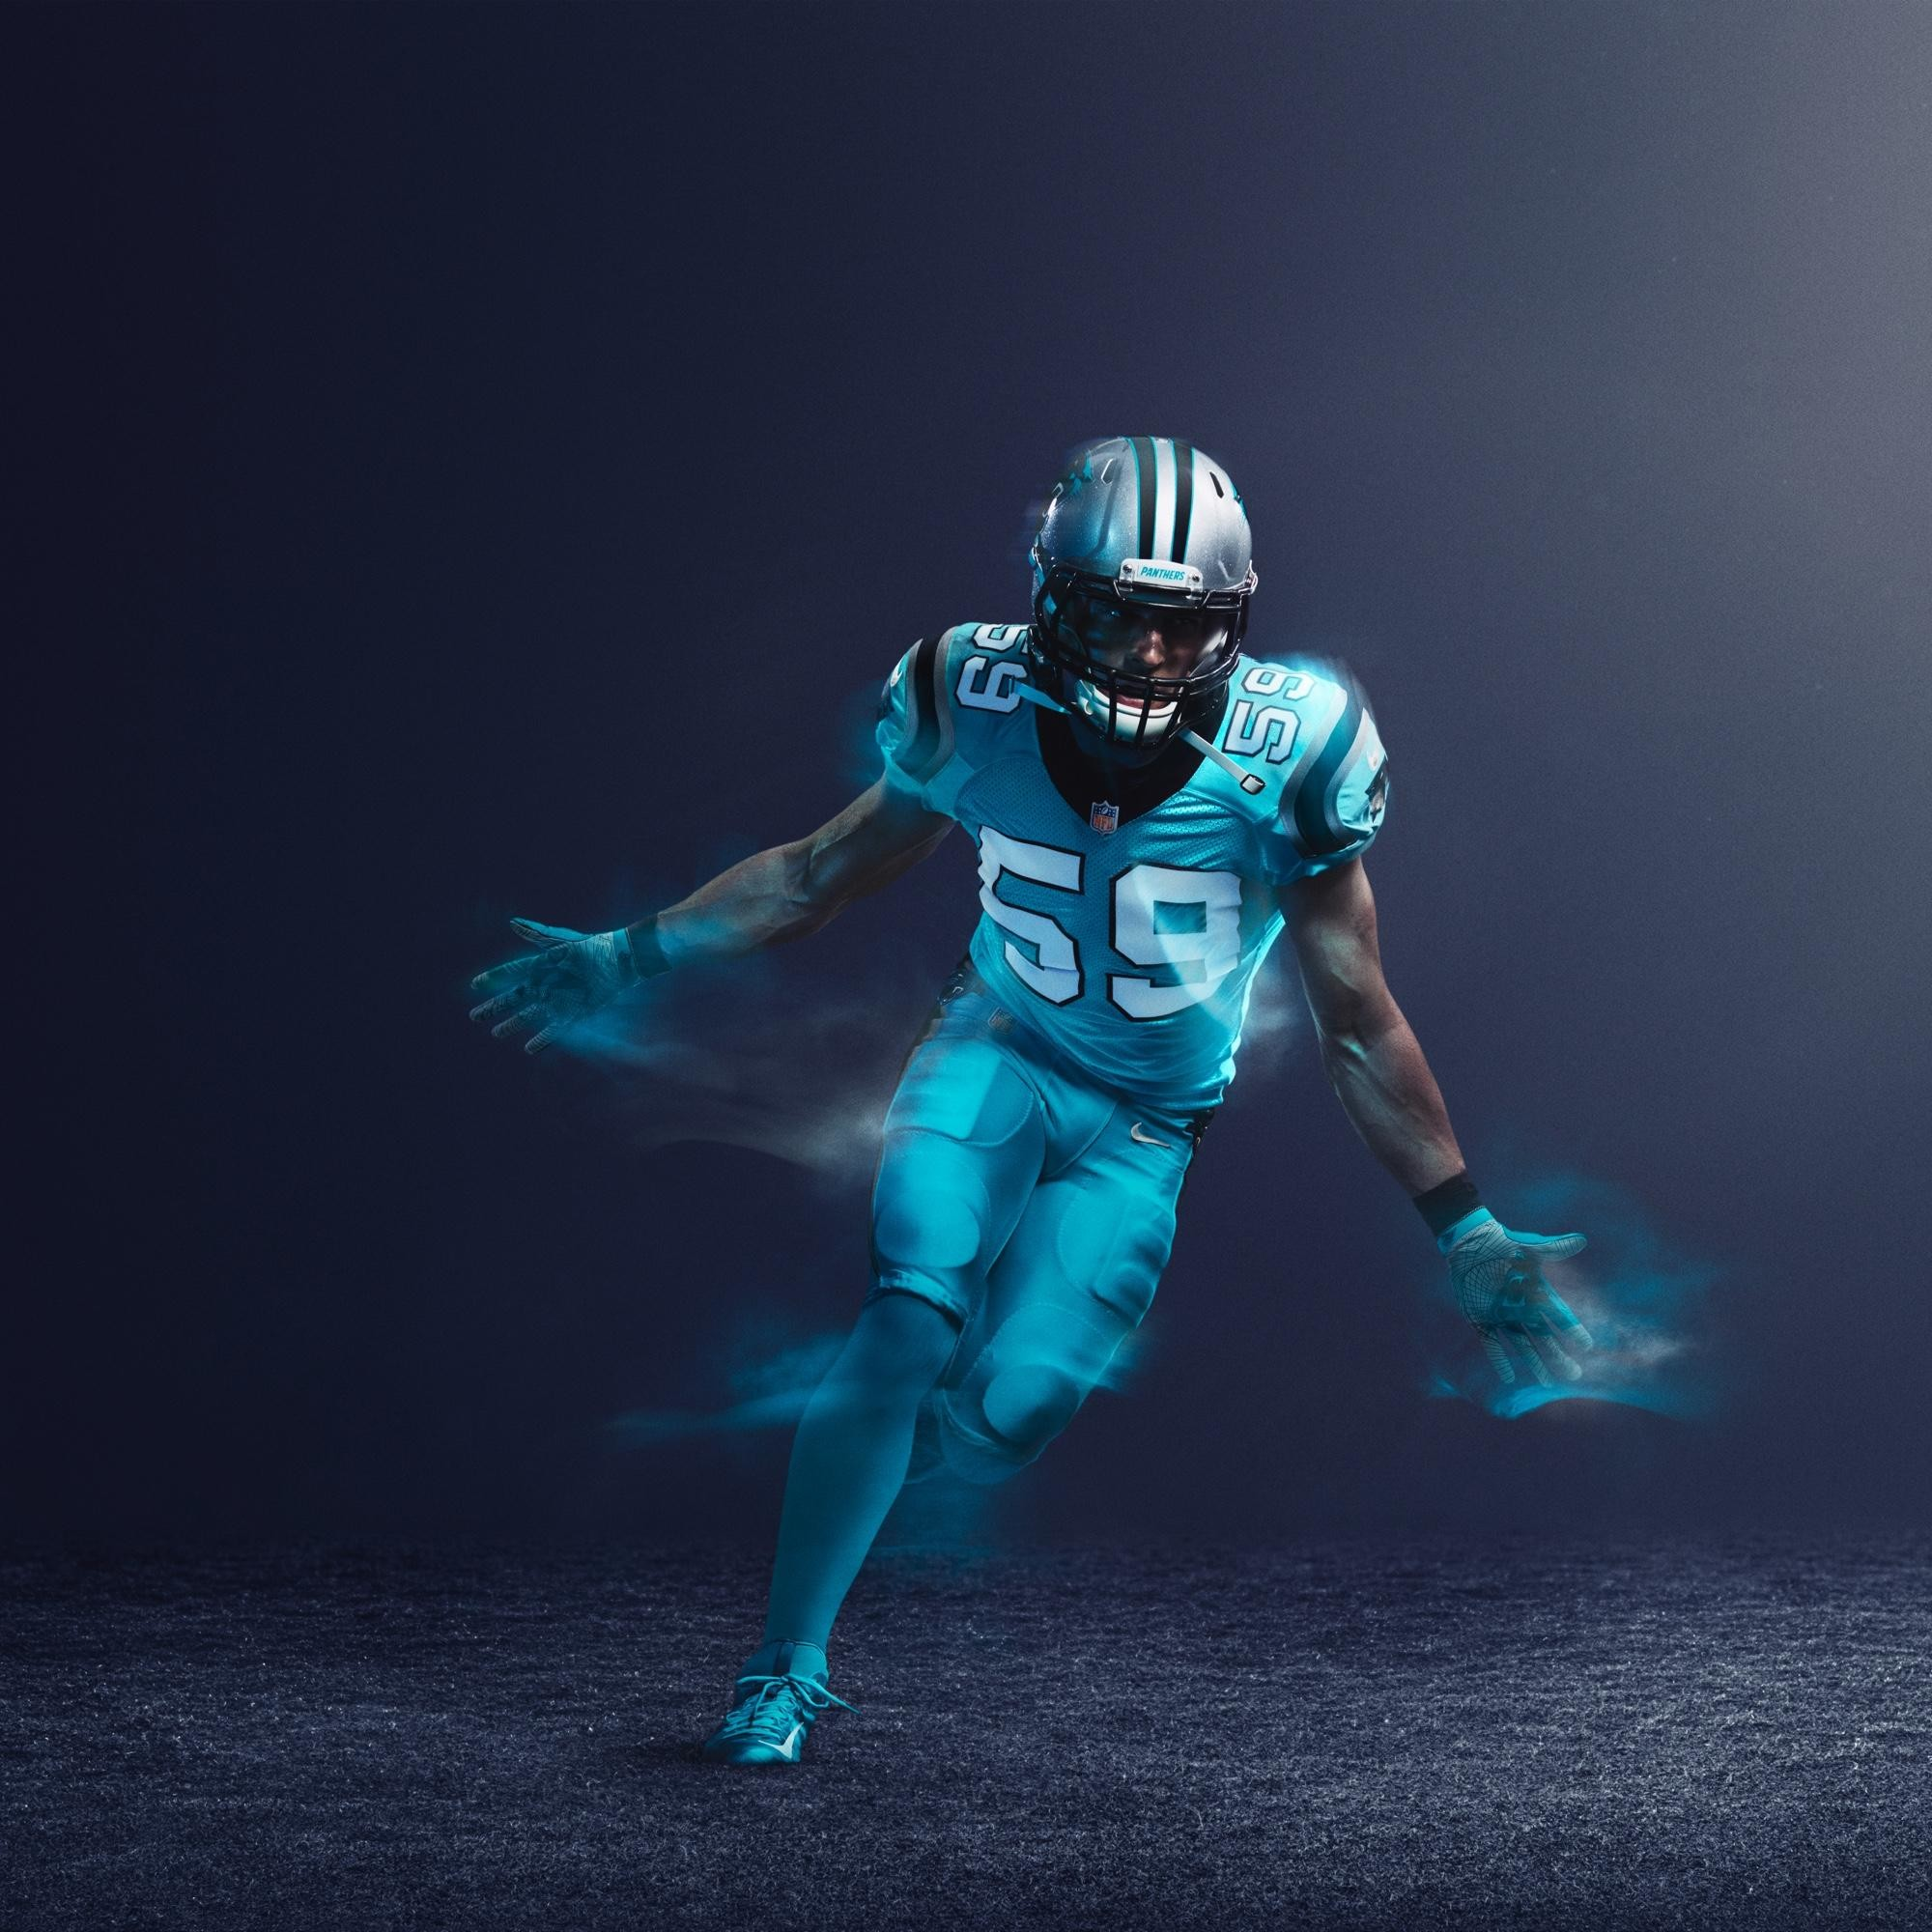 Computer Wallpaper Com: Carolina Panthers HD Wallpapers (74+ Images